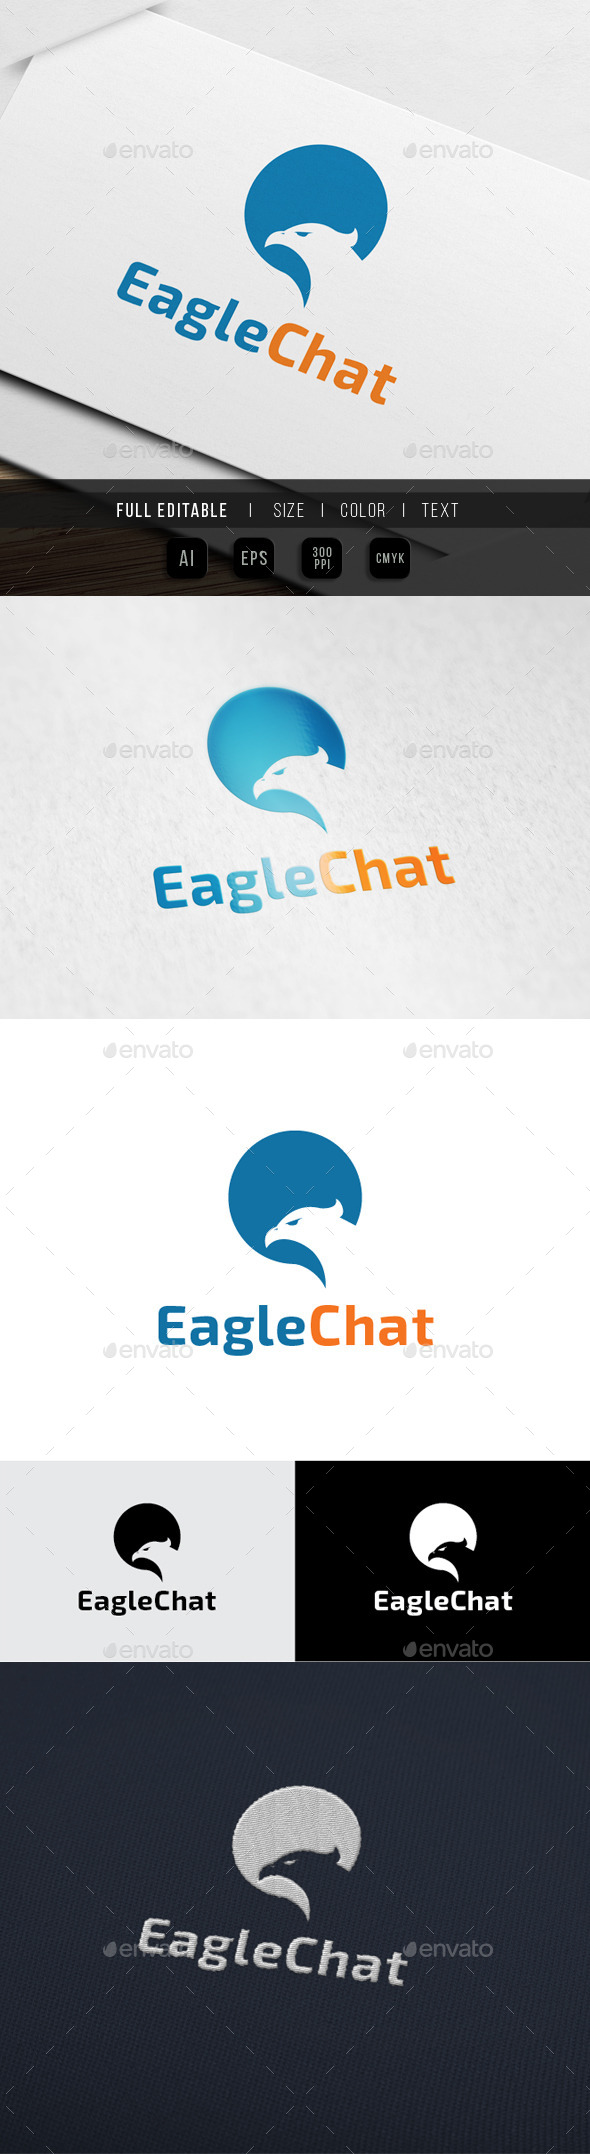 Eagle Chat Express Logo